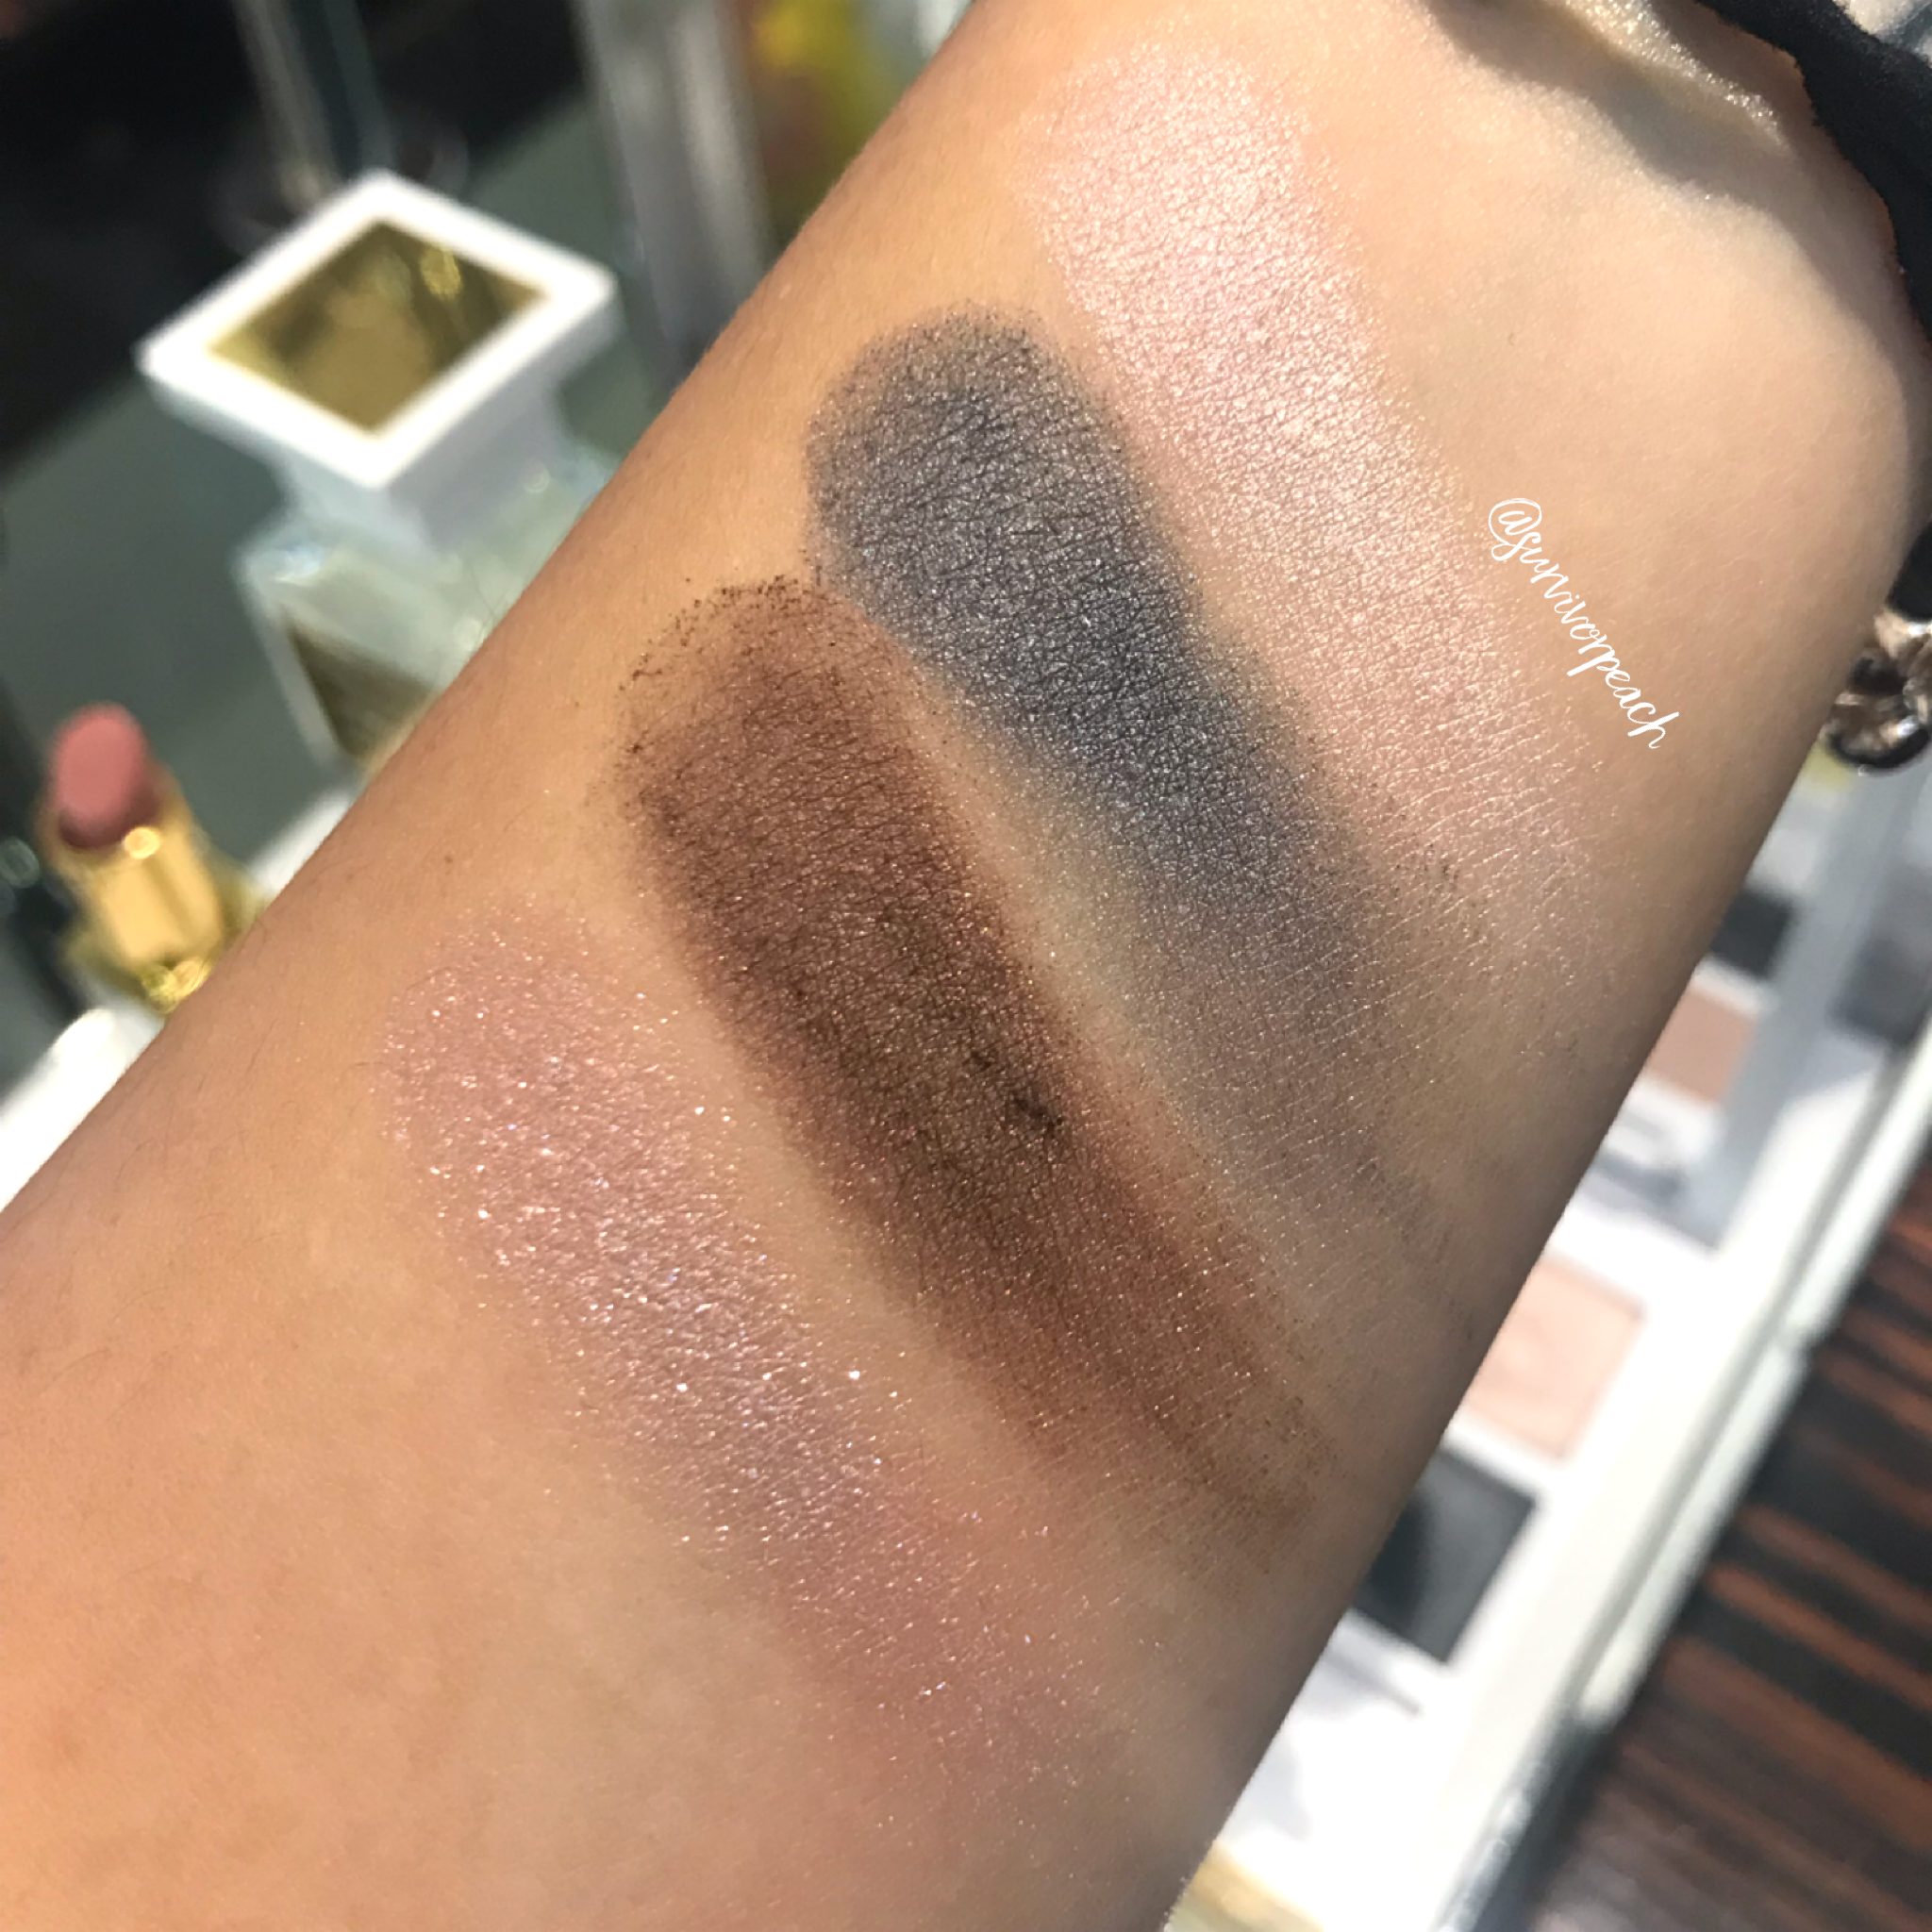 Swatches of the Tom Ford White Suede Eye Quad